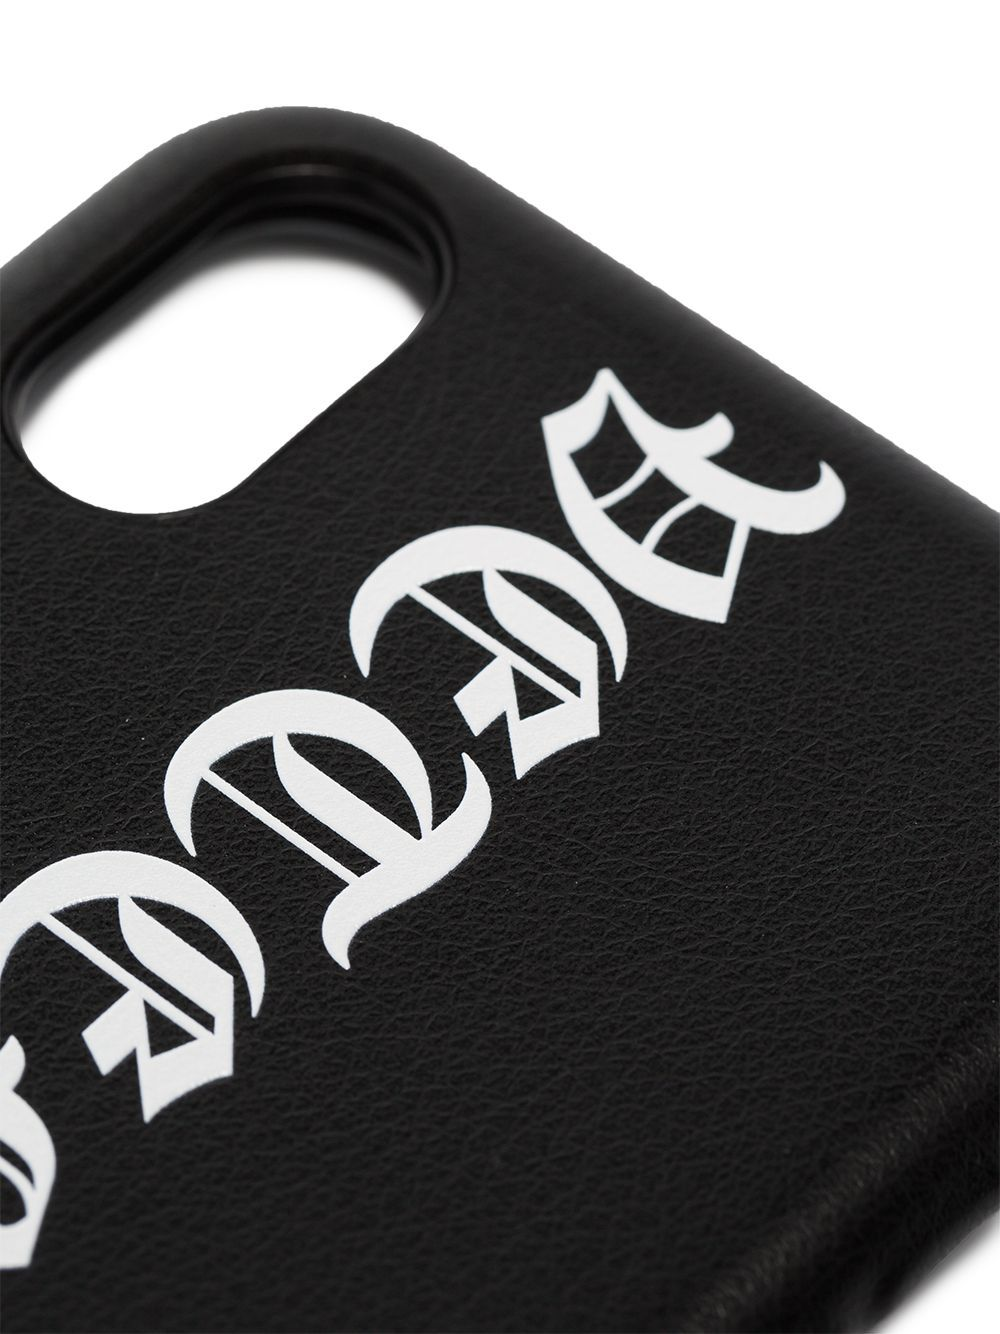 VETEMENTS gothic logo iPhone XS case